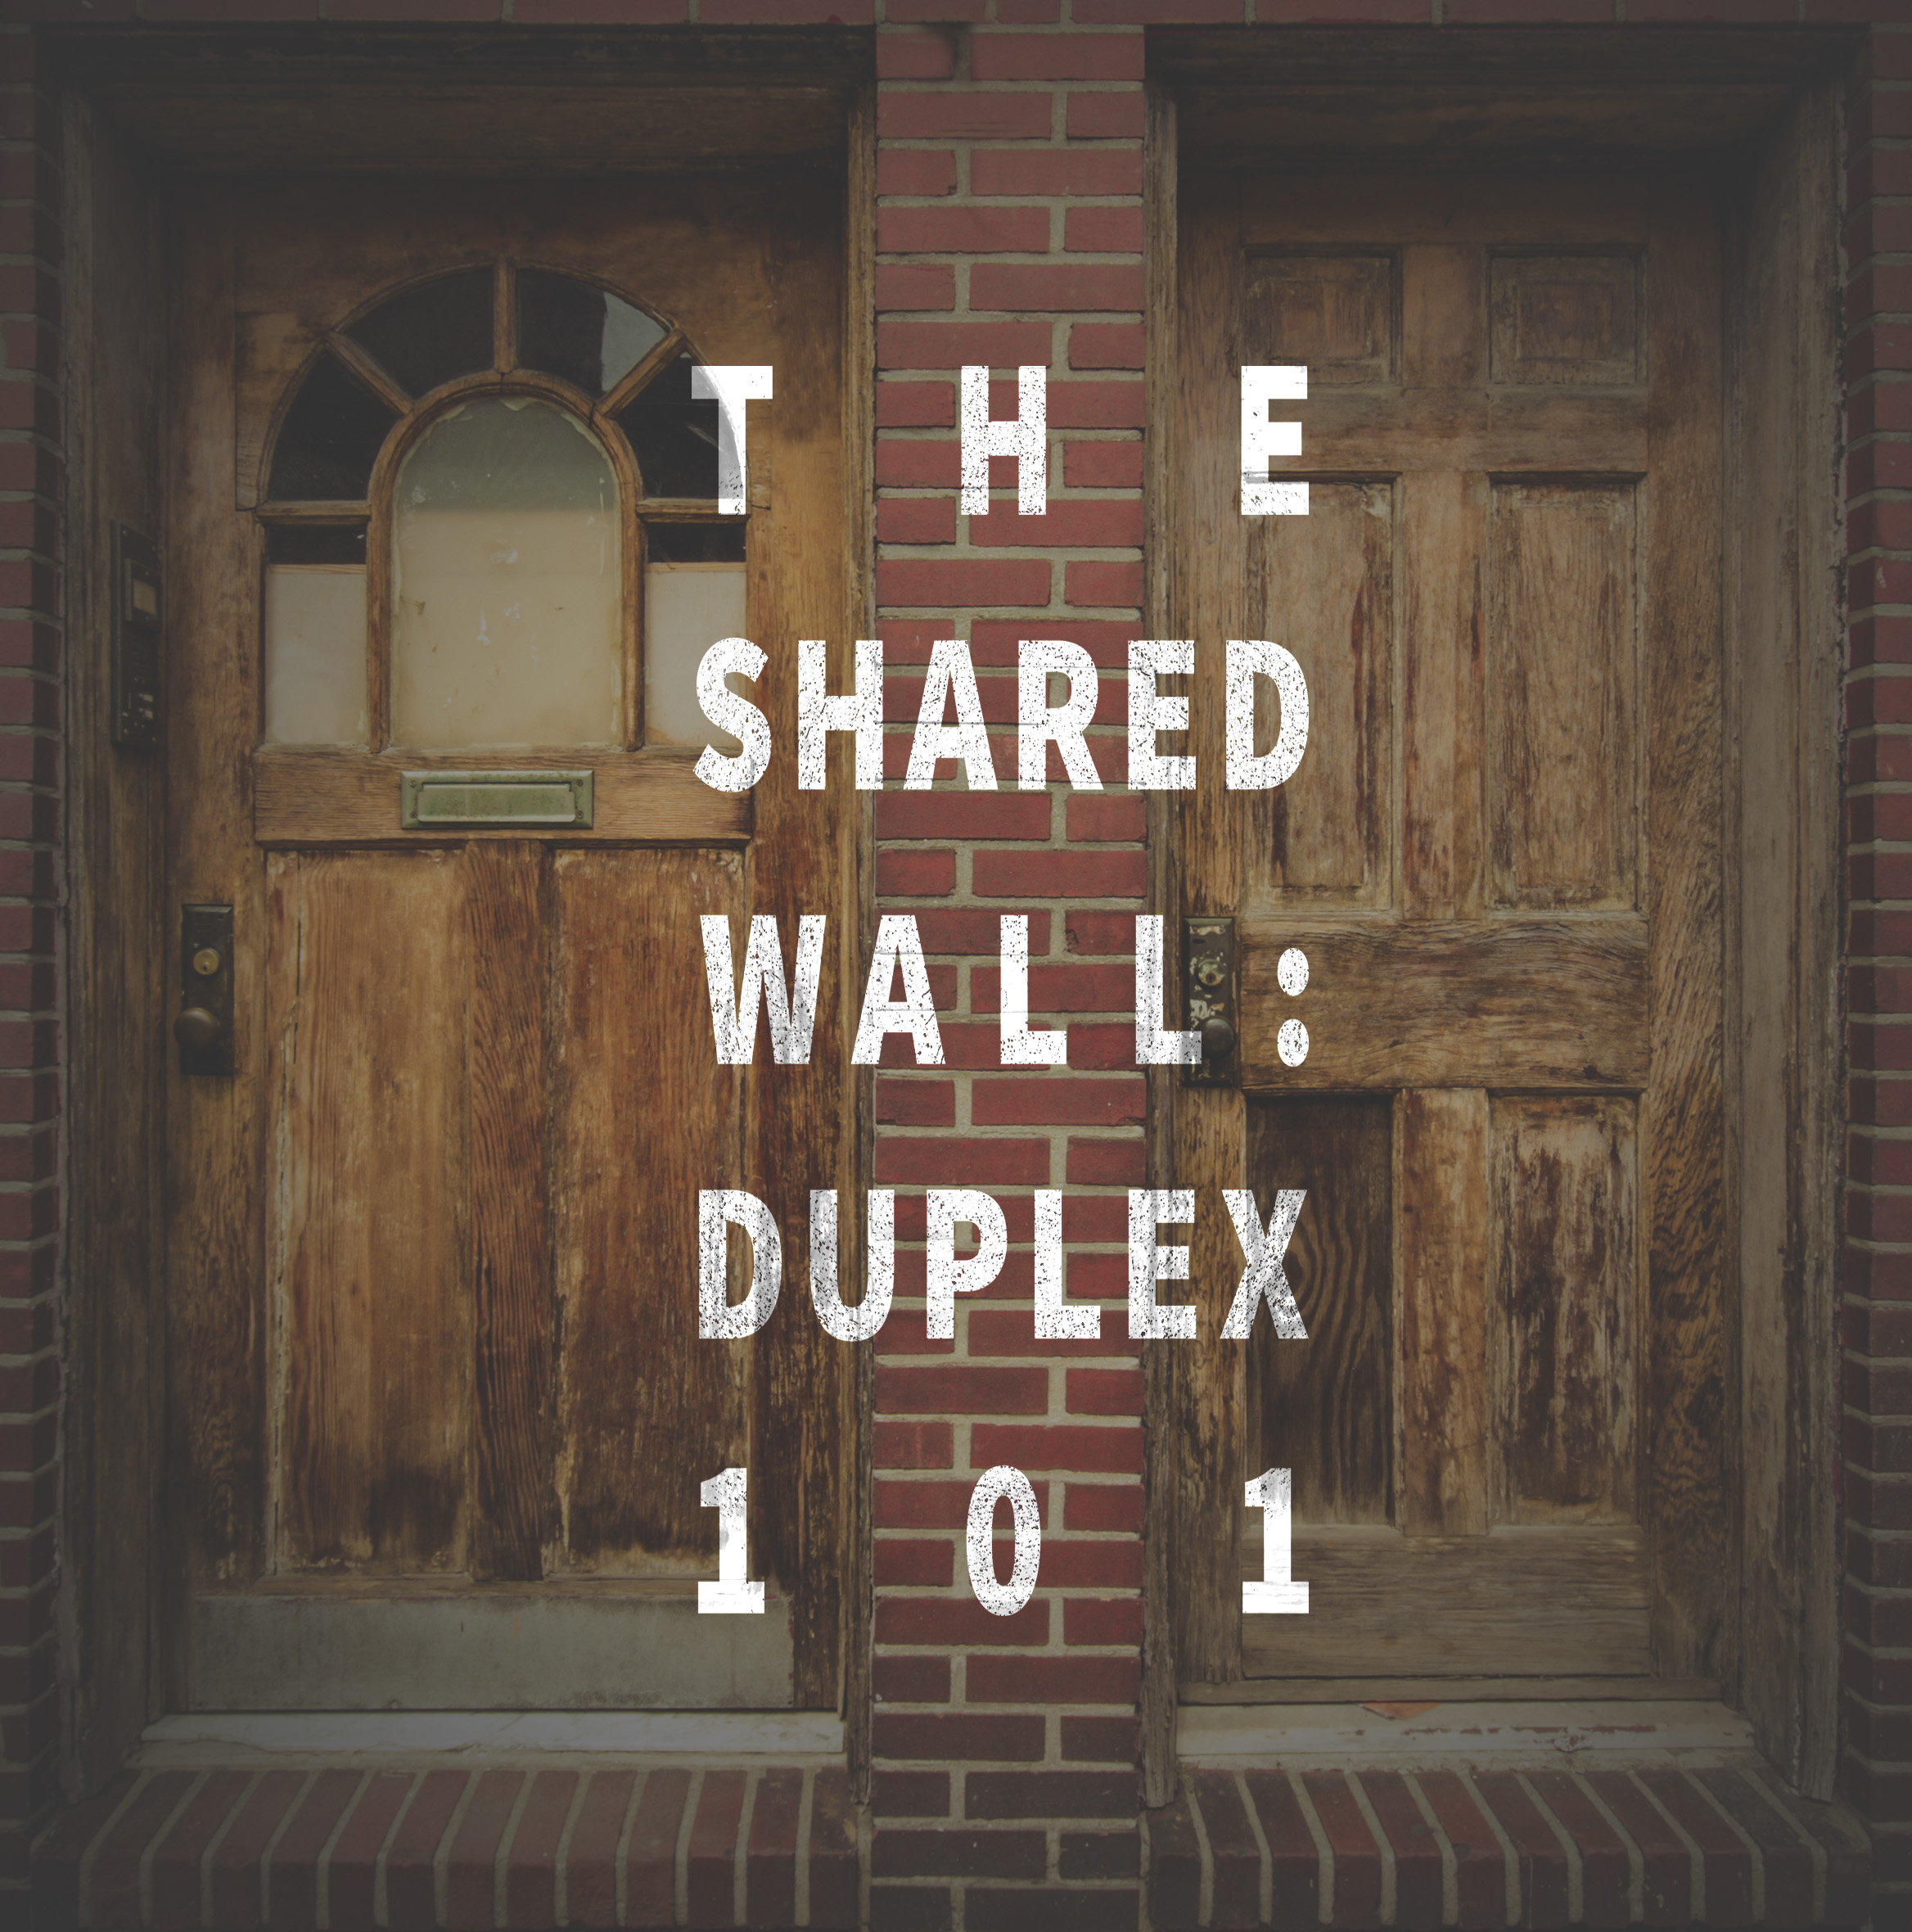 Find A Duplex For Rent: The Shared Wall: Duplex 101